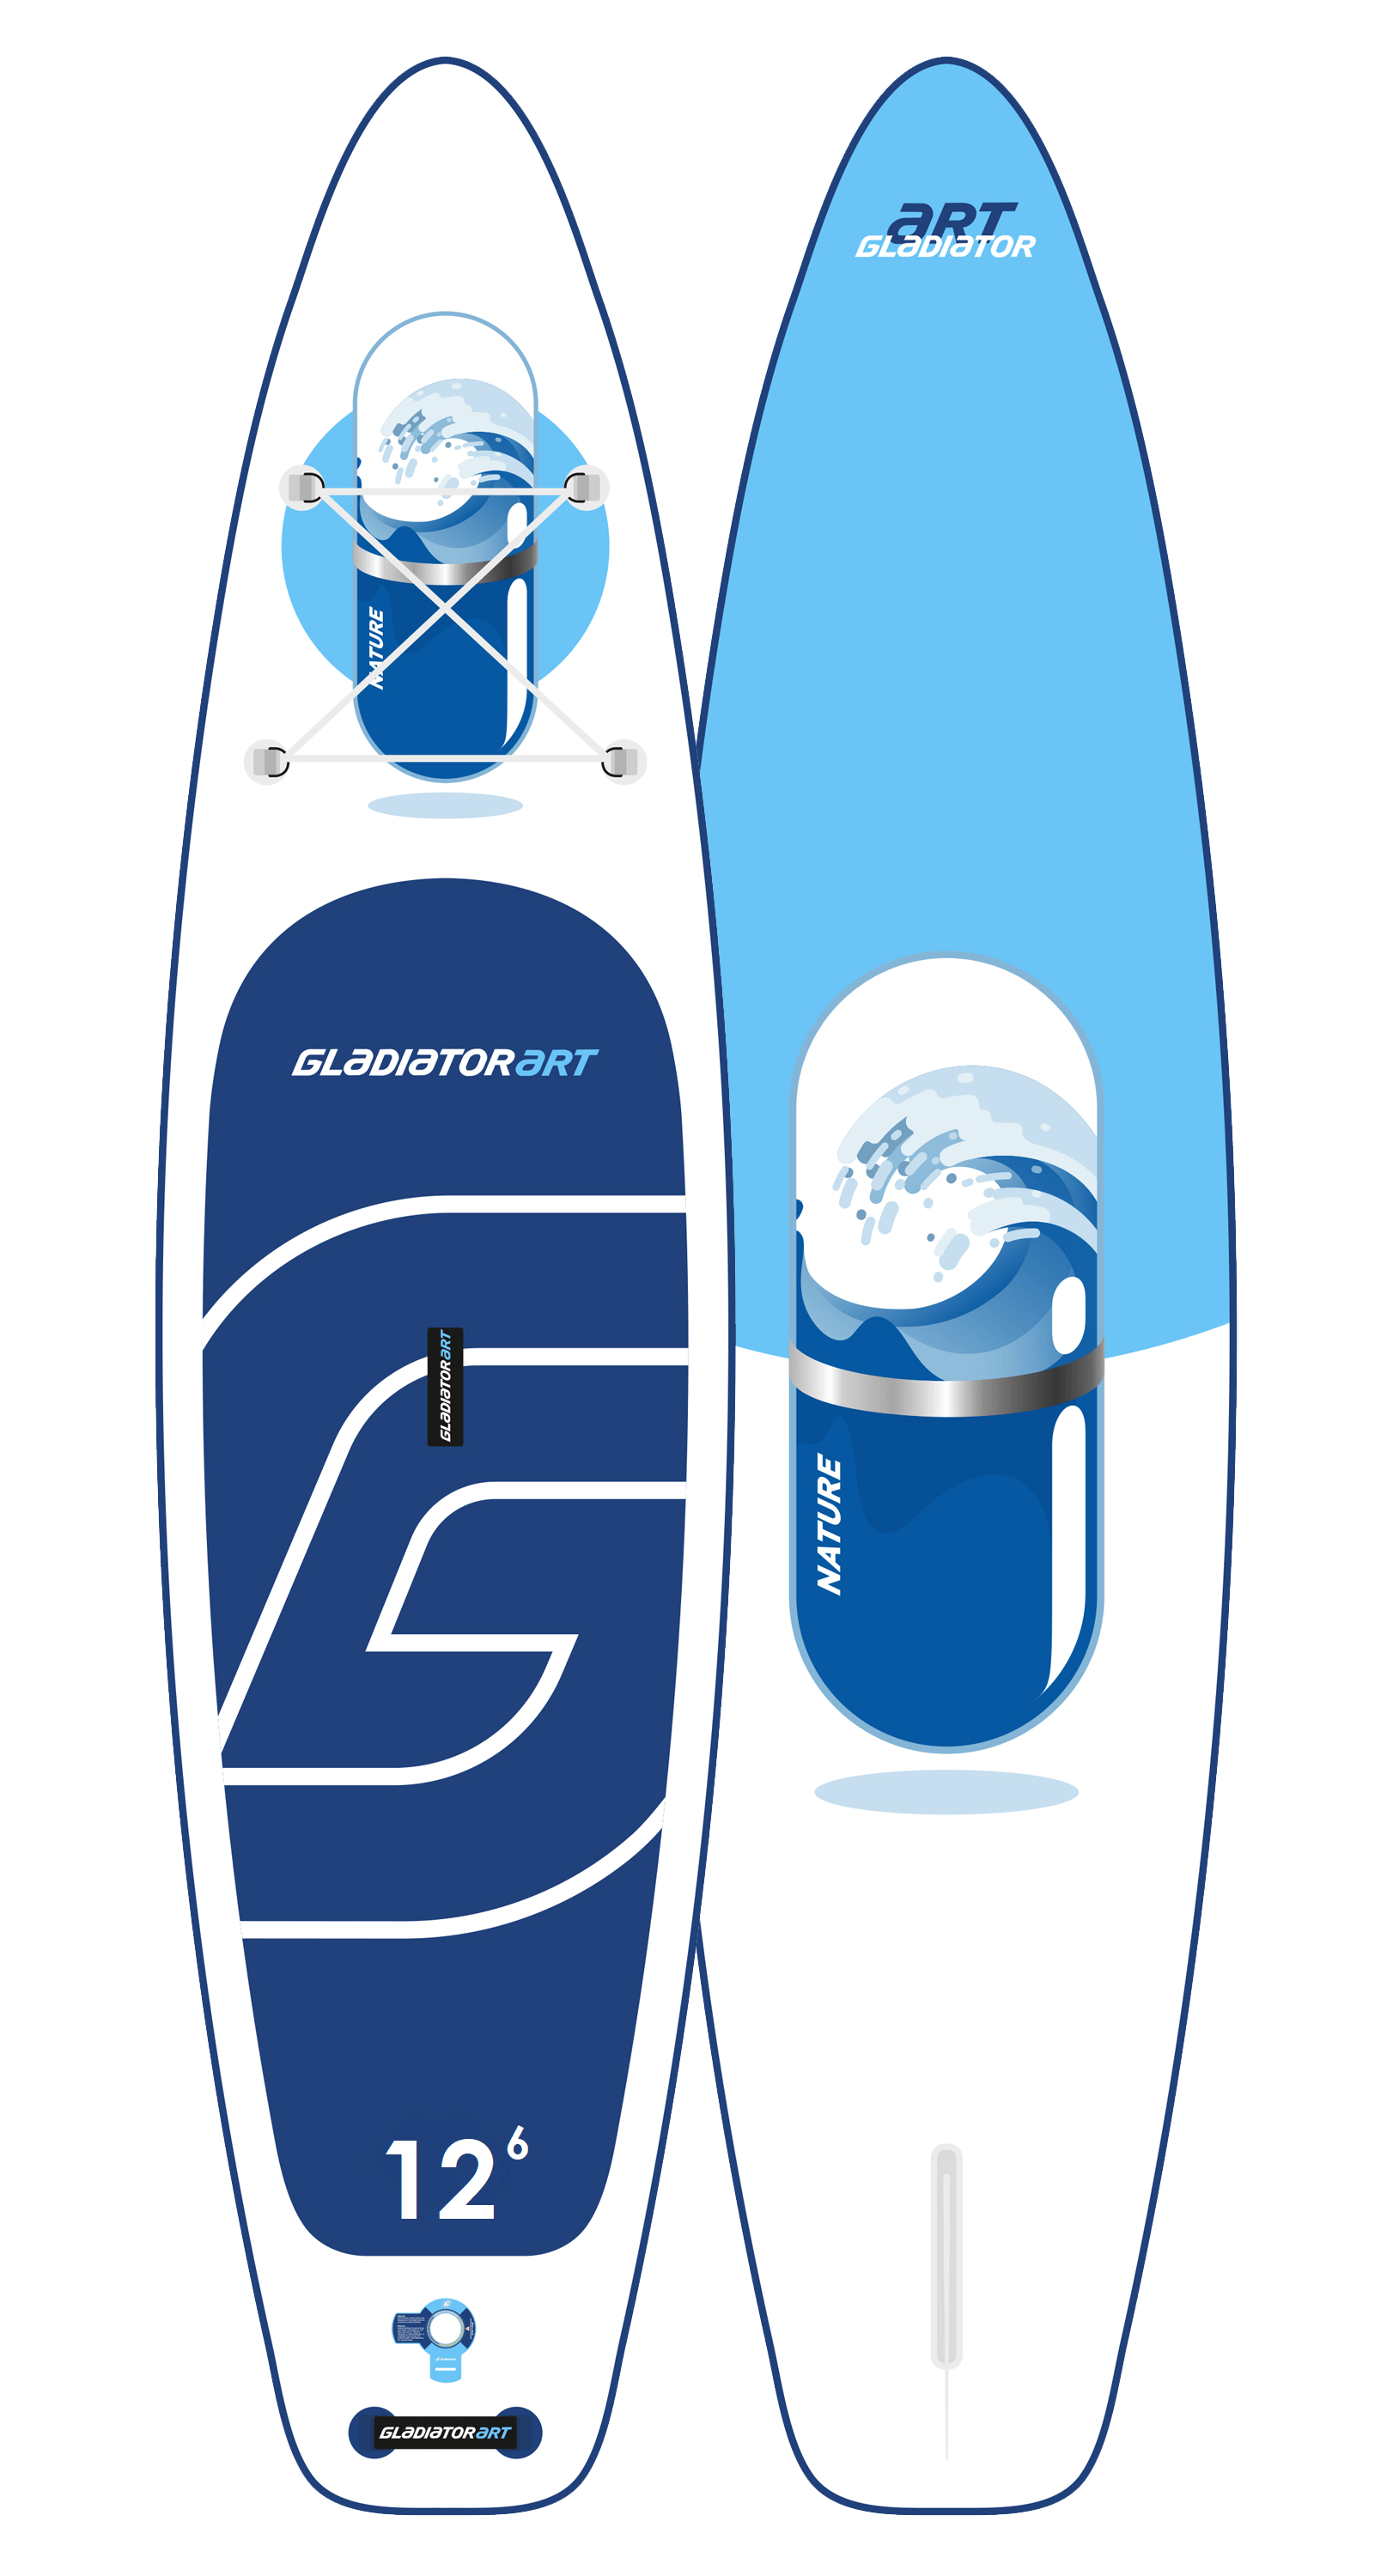 Надувной SUP борд GLADIATOR ART NATURE 12,6